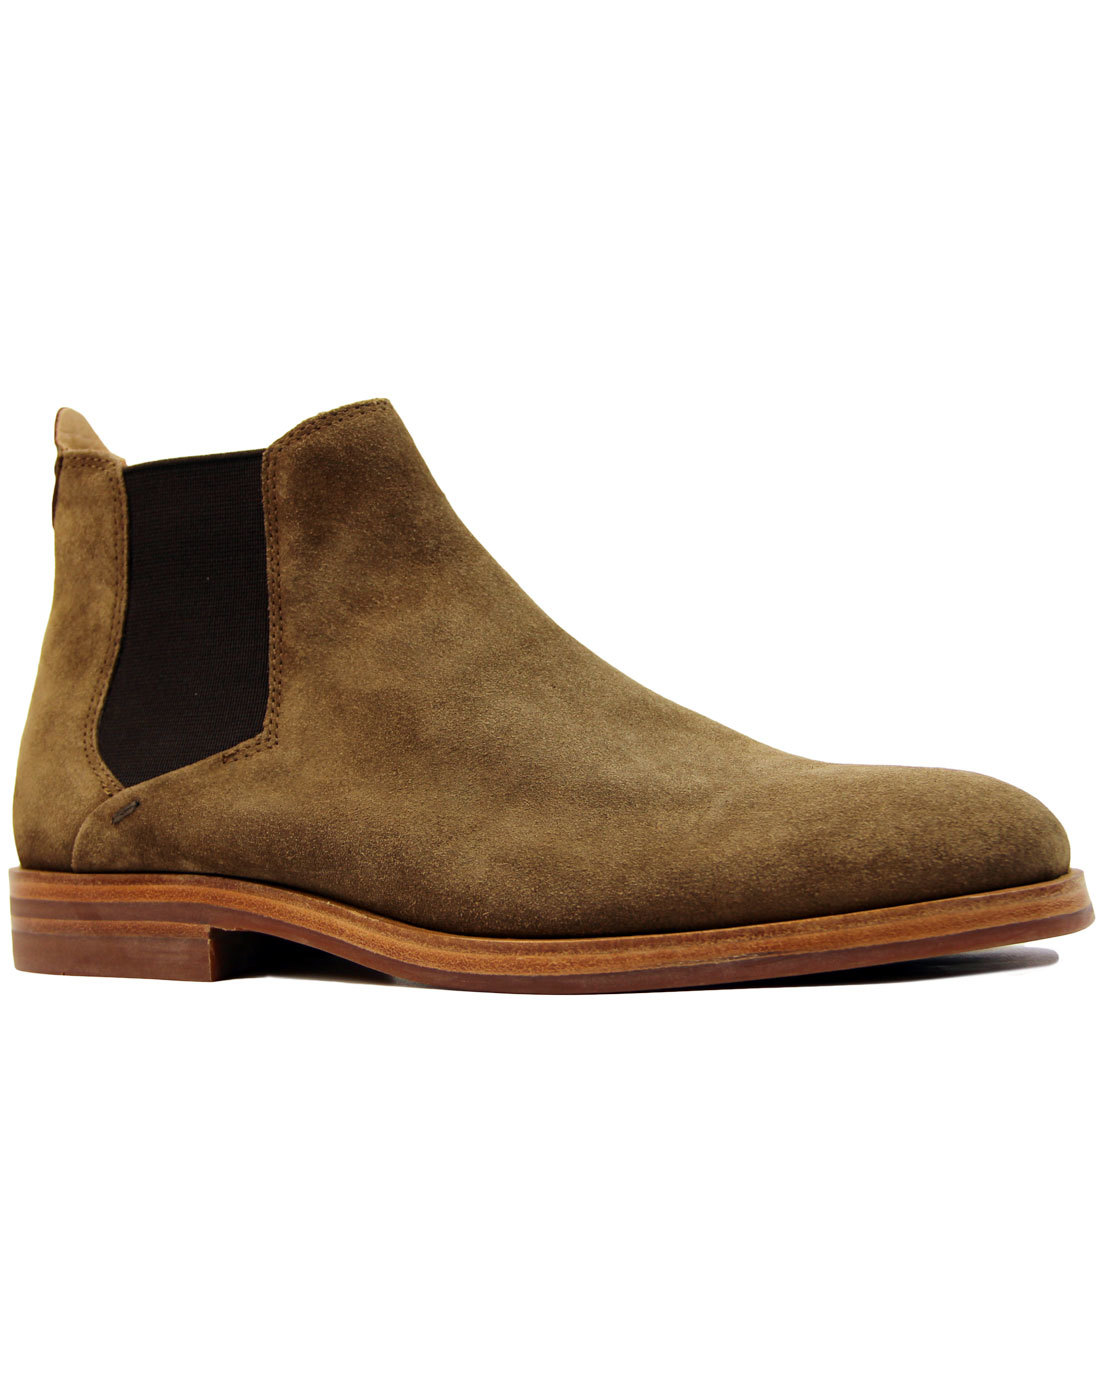 H by hudson tonte suede retro 1960s mod chelsea boots in for Tonte